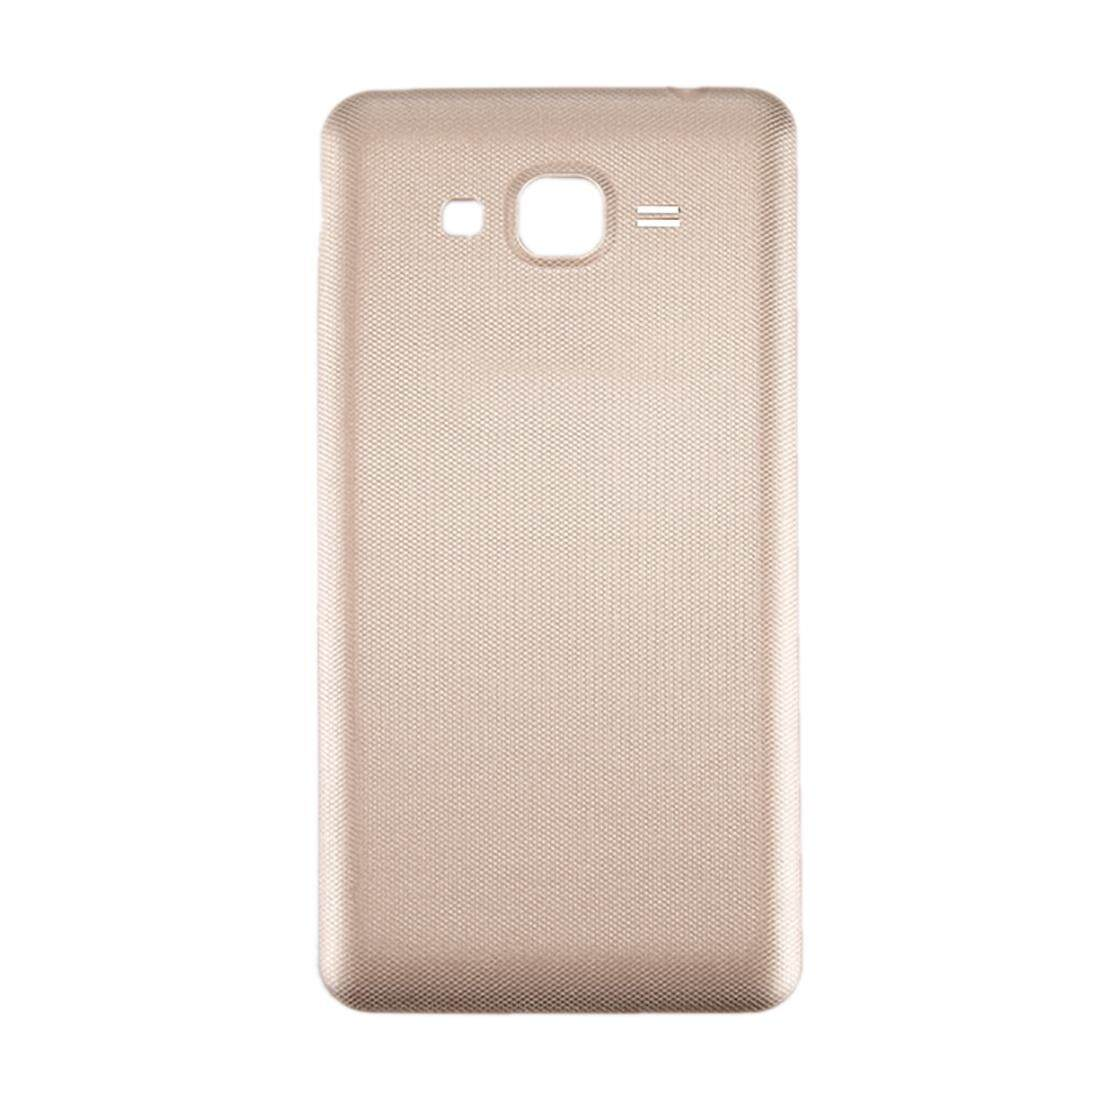 Features Ipartsbuy For Samsung Galaxy J2 Prime G532 Battery Back My User Flip Cover Gold Detail Gambar Covergold Terbaru